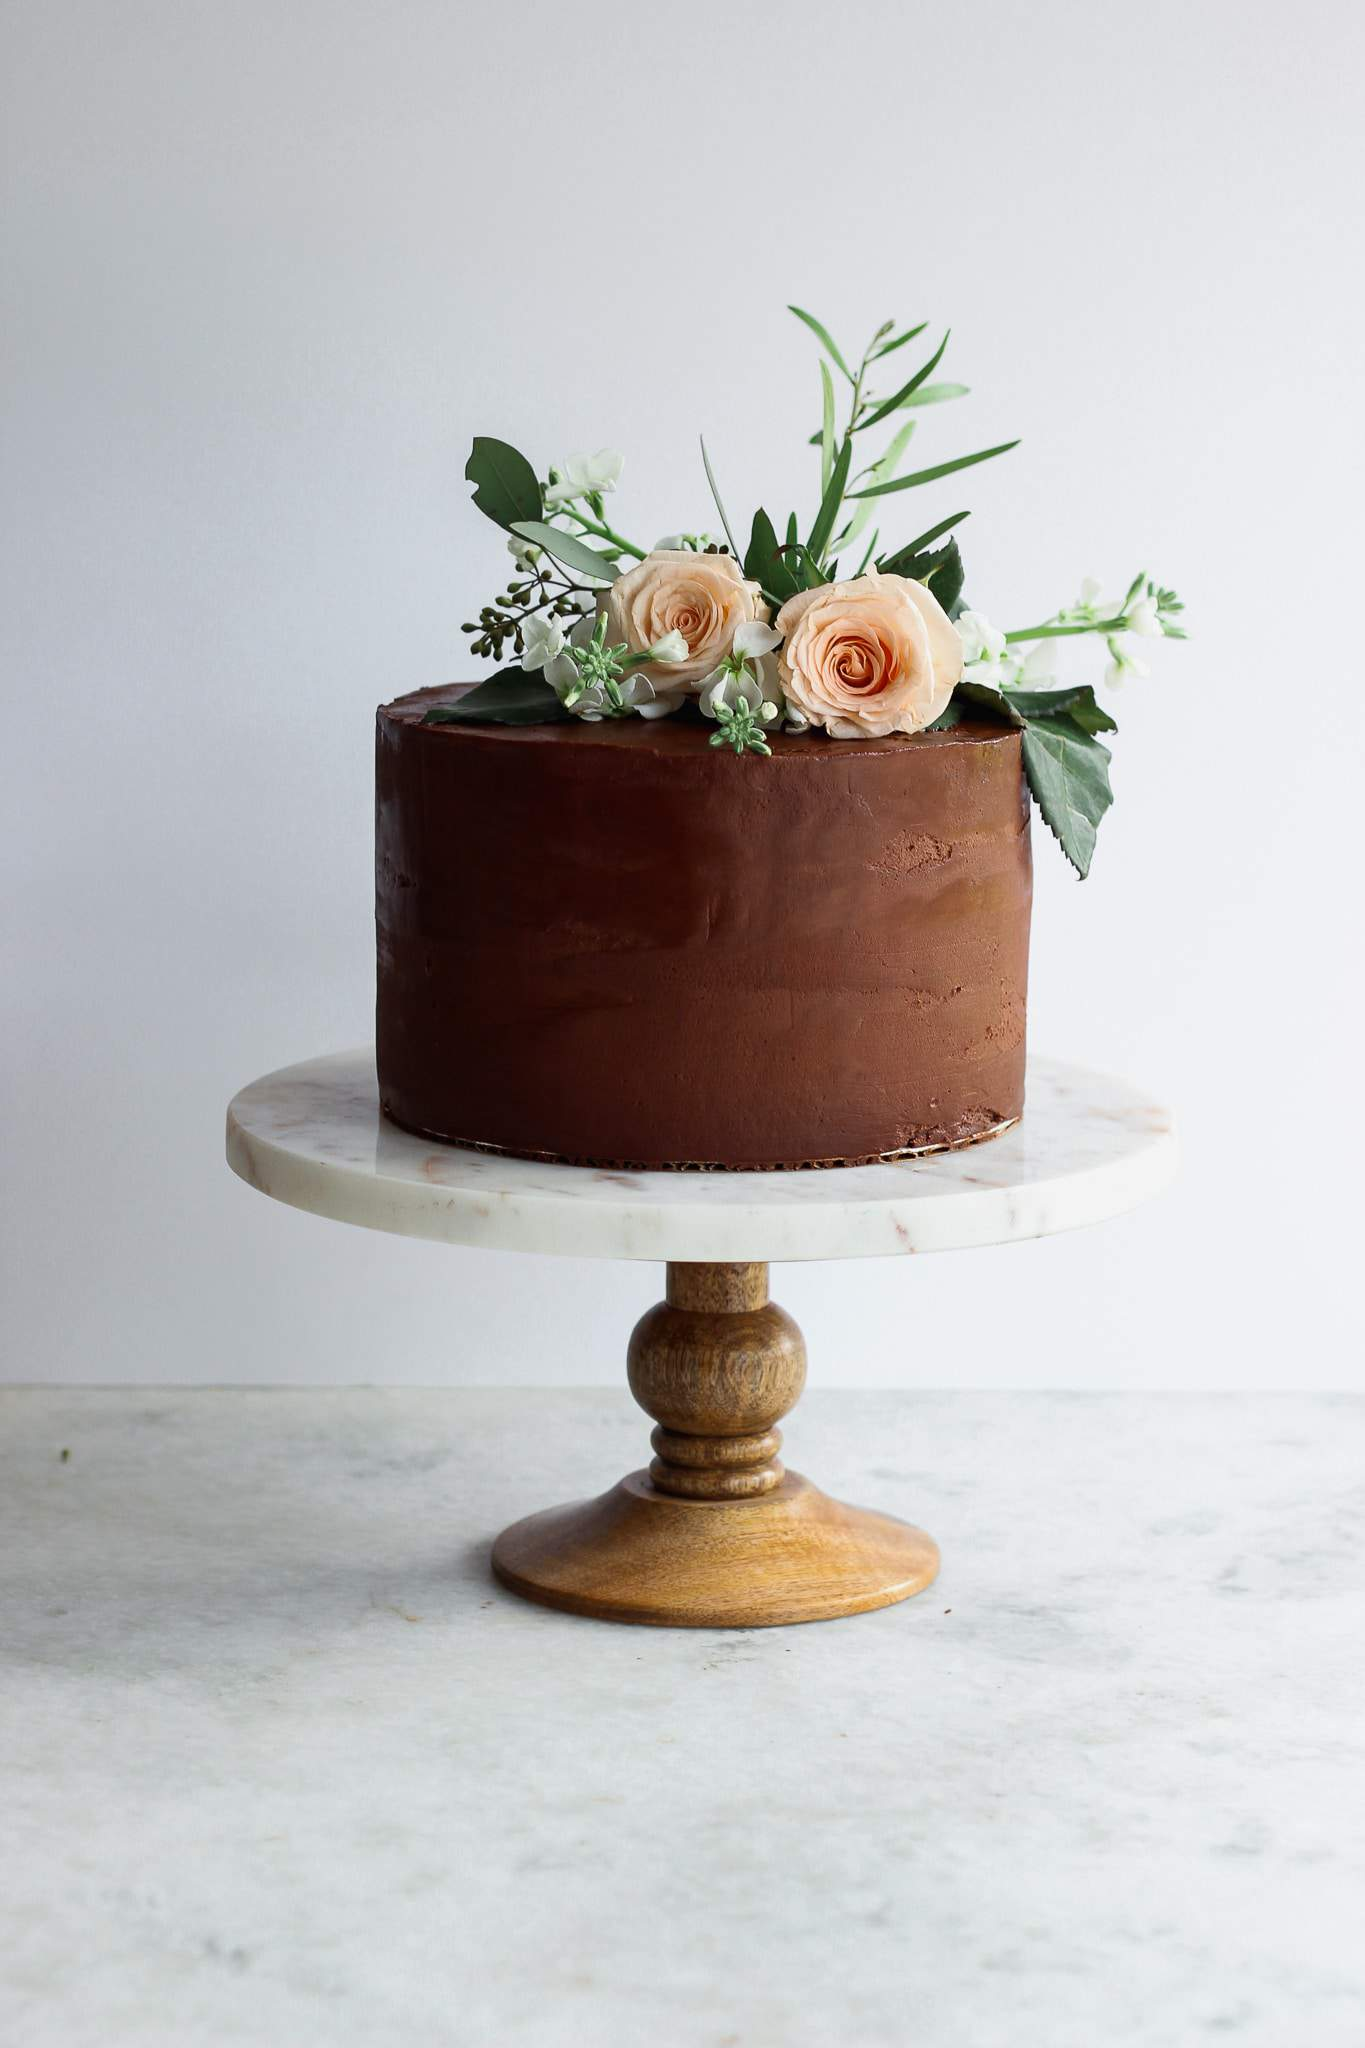 A chocolate cake on a marble and wood cake stand with flower decorations